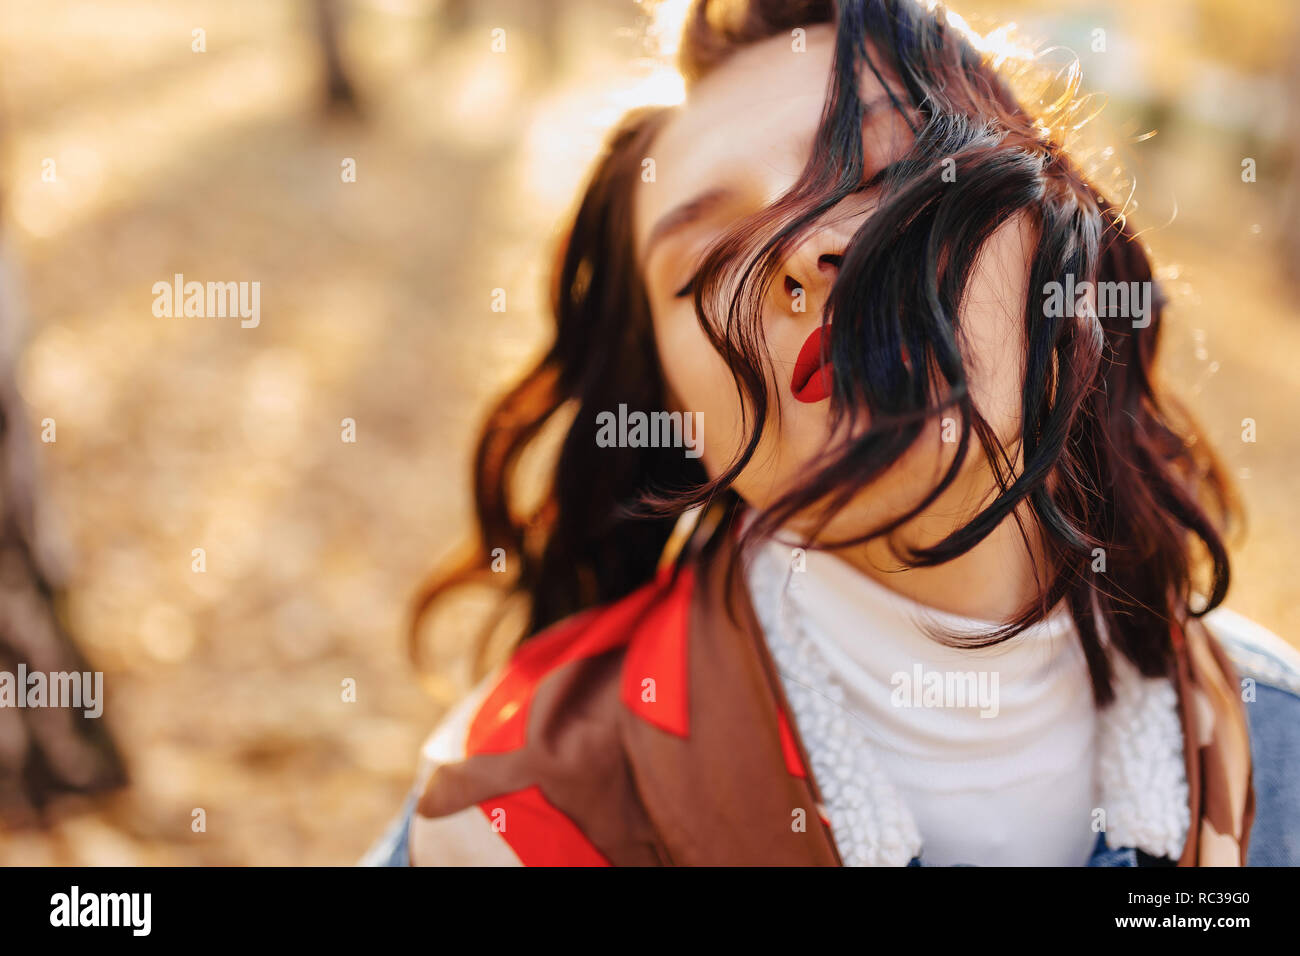 young pretty girl with red lips and short hair in a denim coat walks in the autumn sunny city Stock Photo